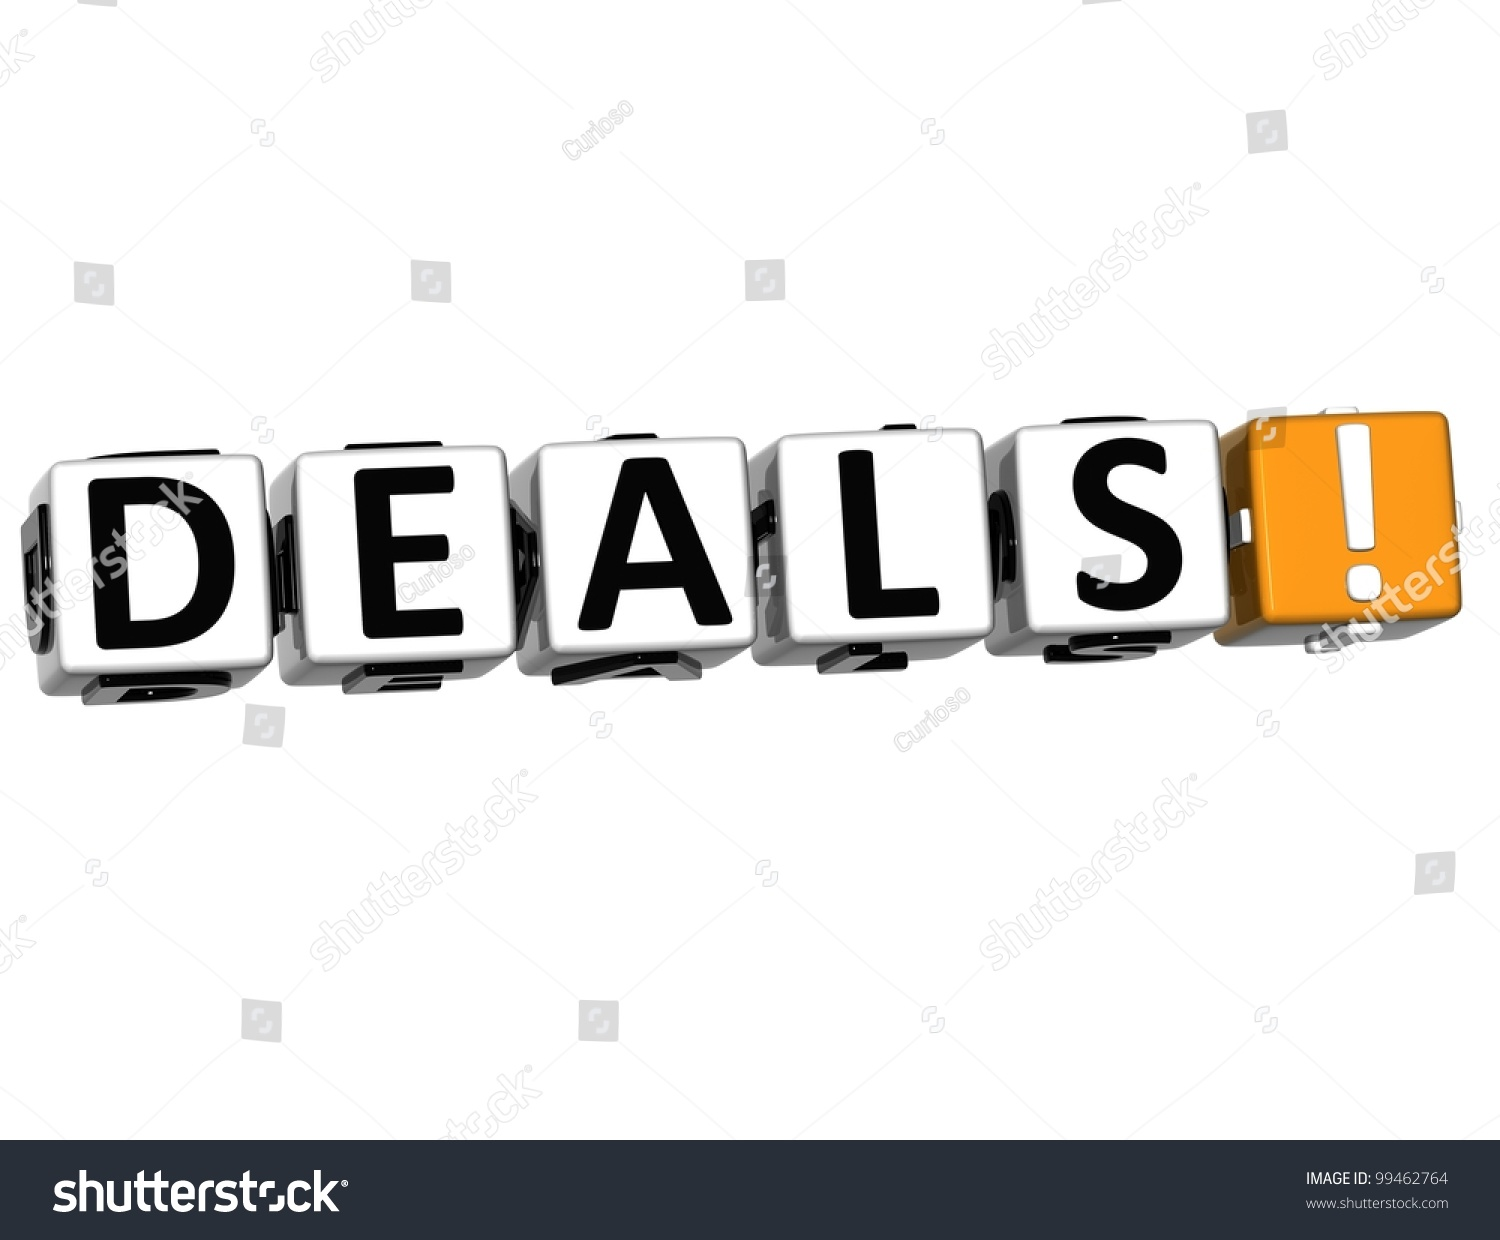 D Deals Royalty Free Stock Illustration Of 3 D Deals Block Text On White